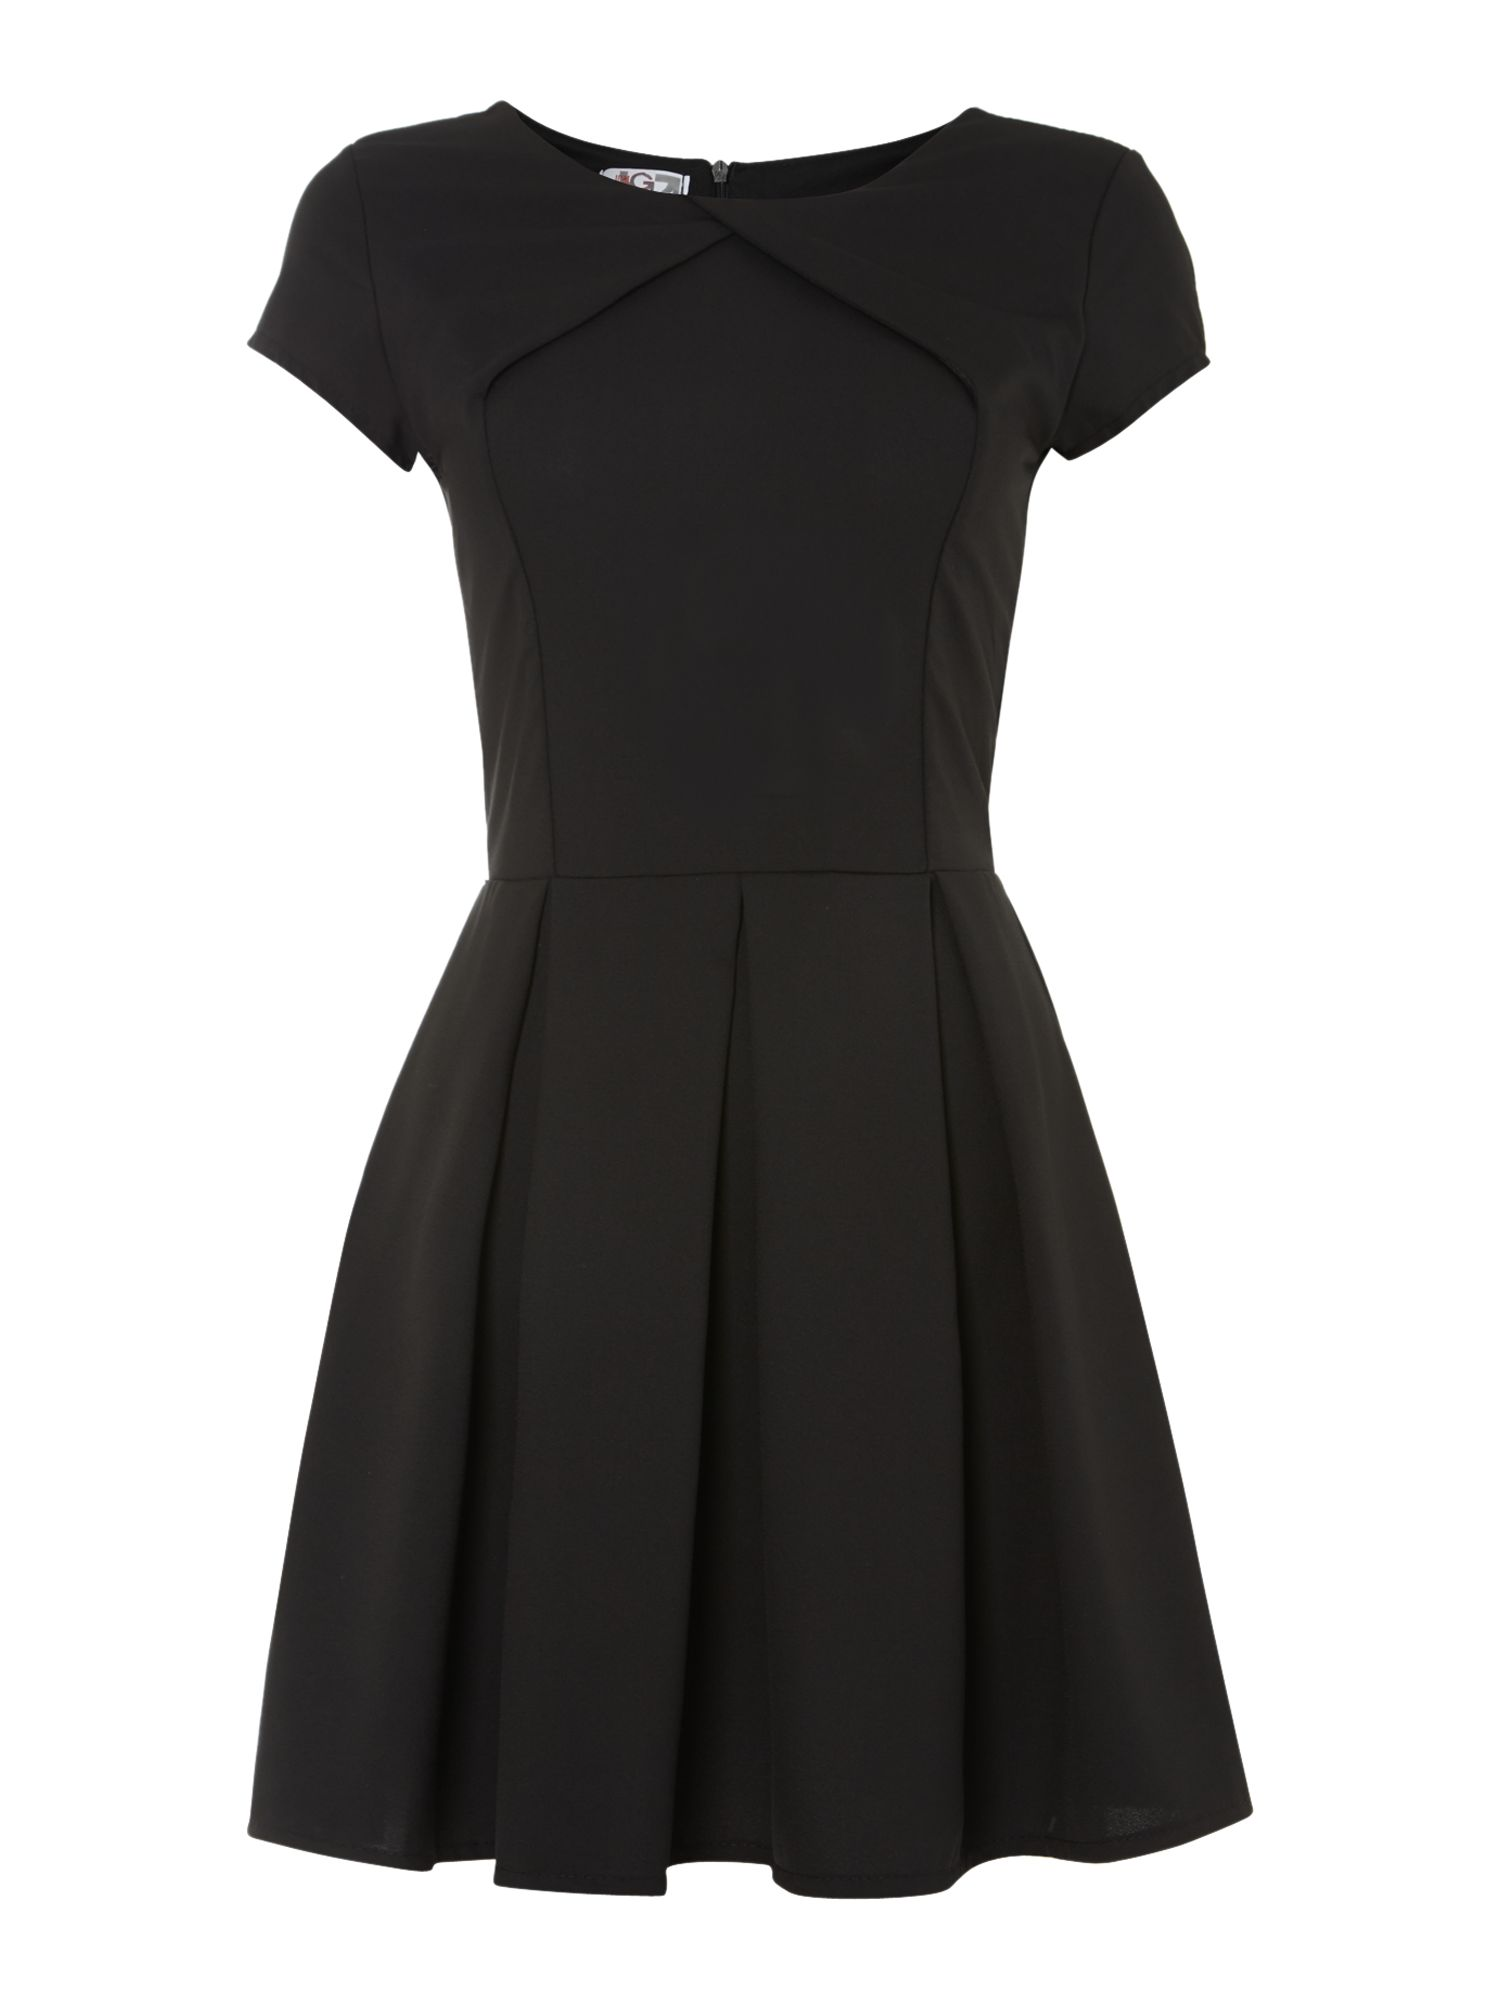 Cross over neckline fit and flare dress